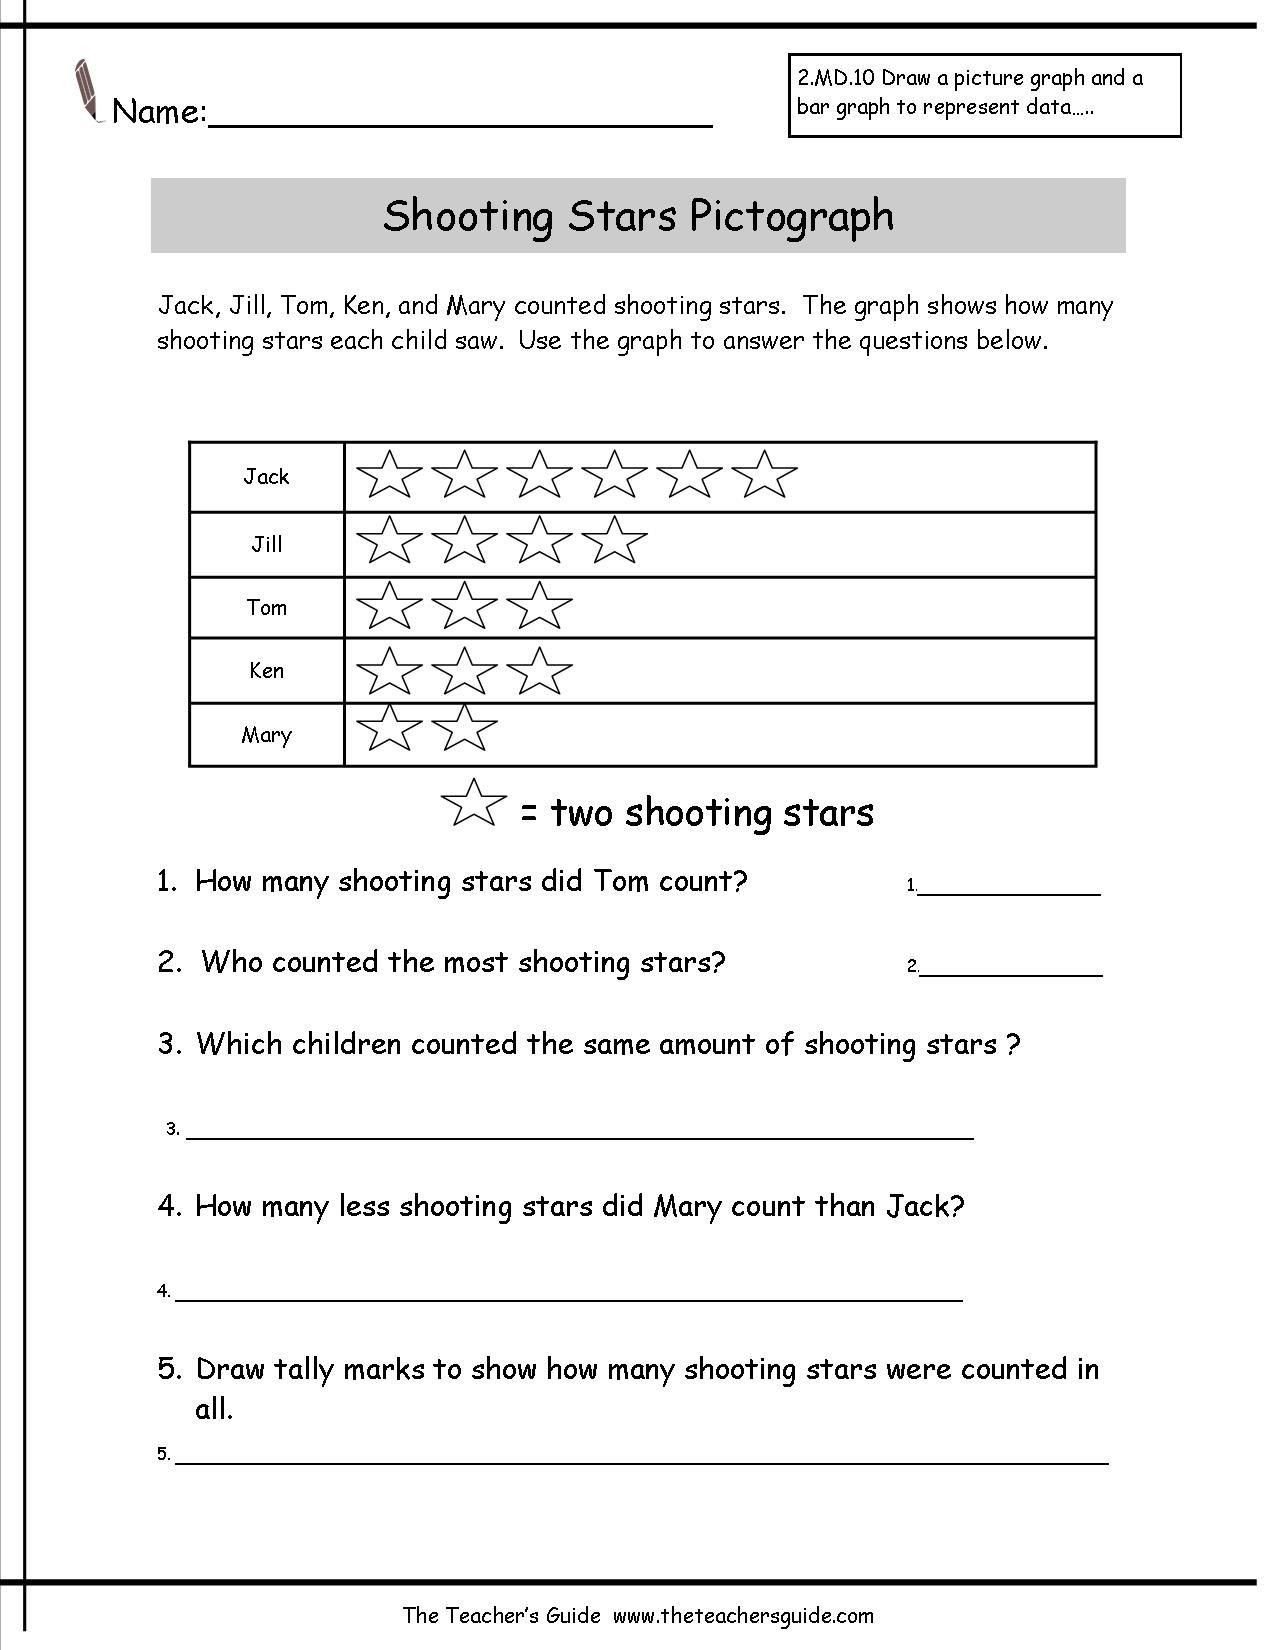 small resolution of Ck Worksheets for 1st Grade Pictograph Worksheet for Grade K   Third grade  worksheets